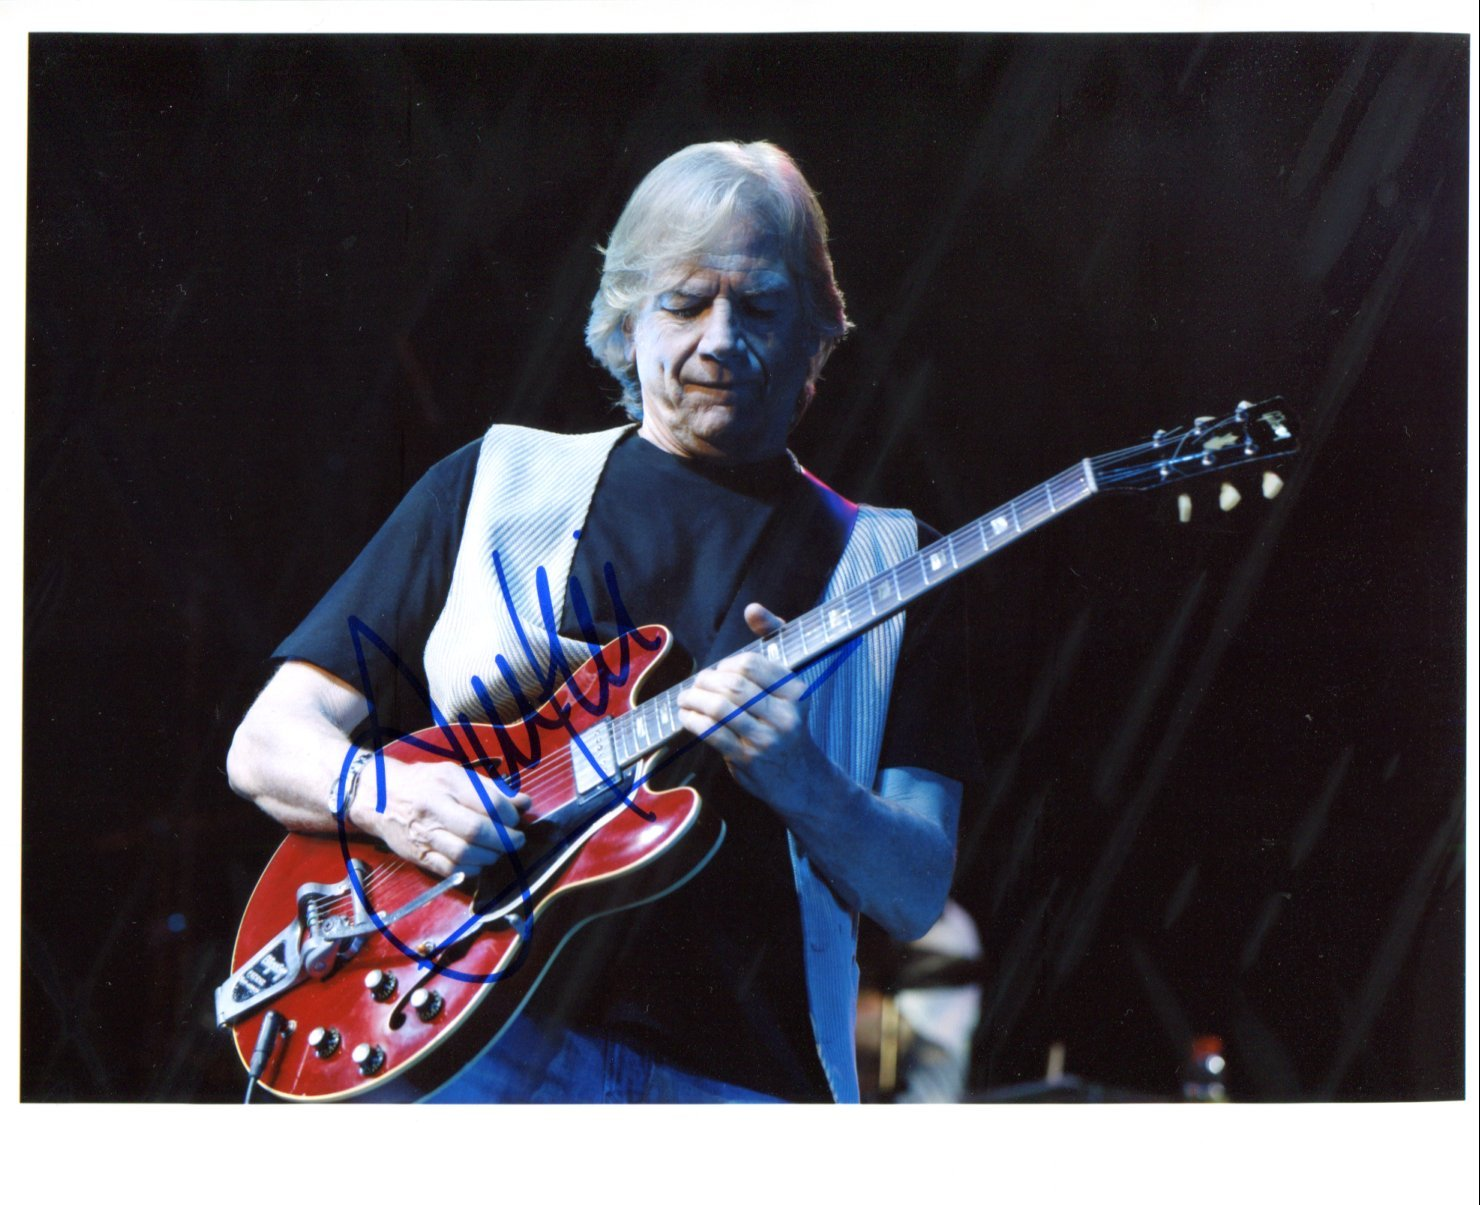 SUPERB JUSTIN HAYWARD (MOODY BLUES) SIGNED PHOTO + COA!!!